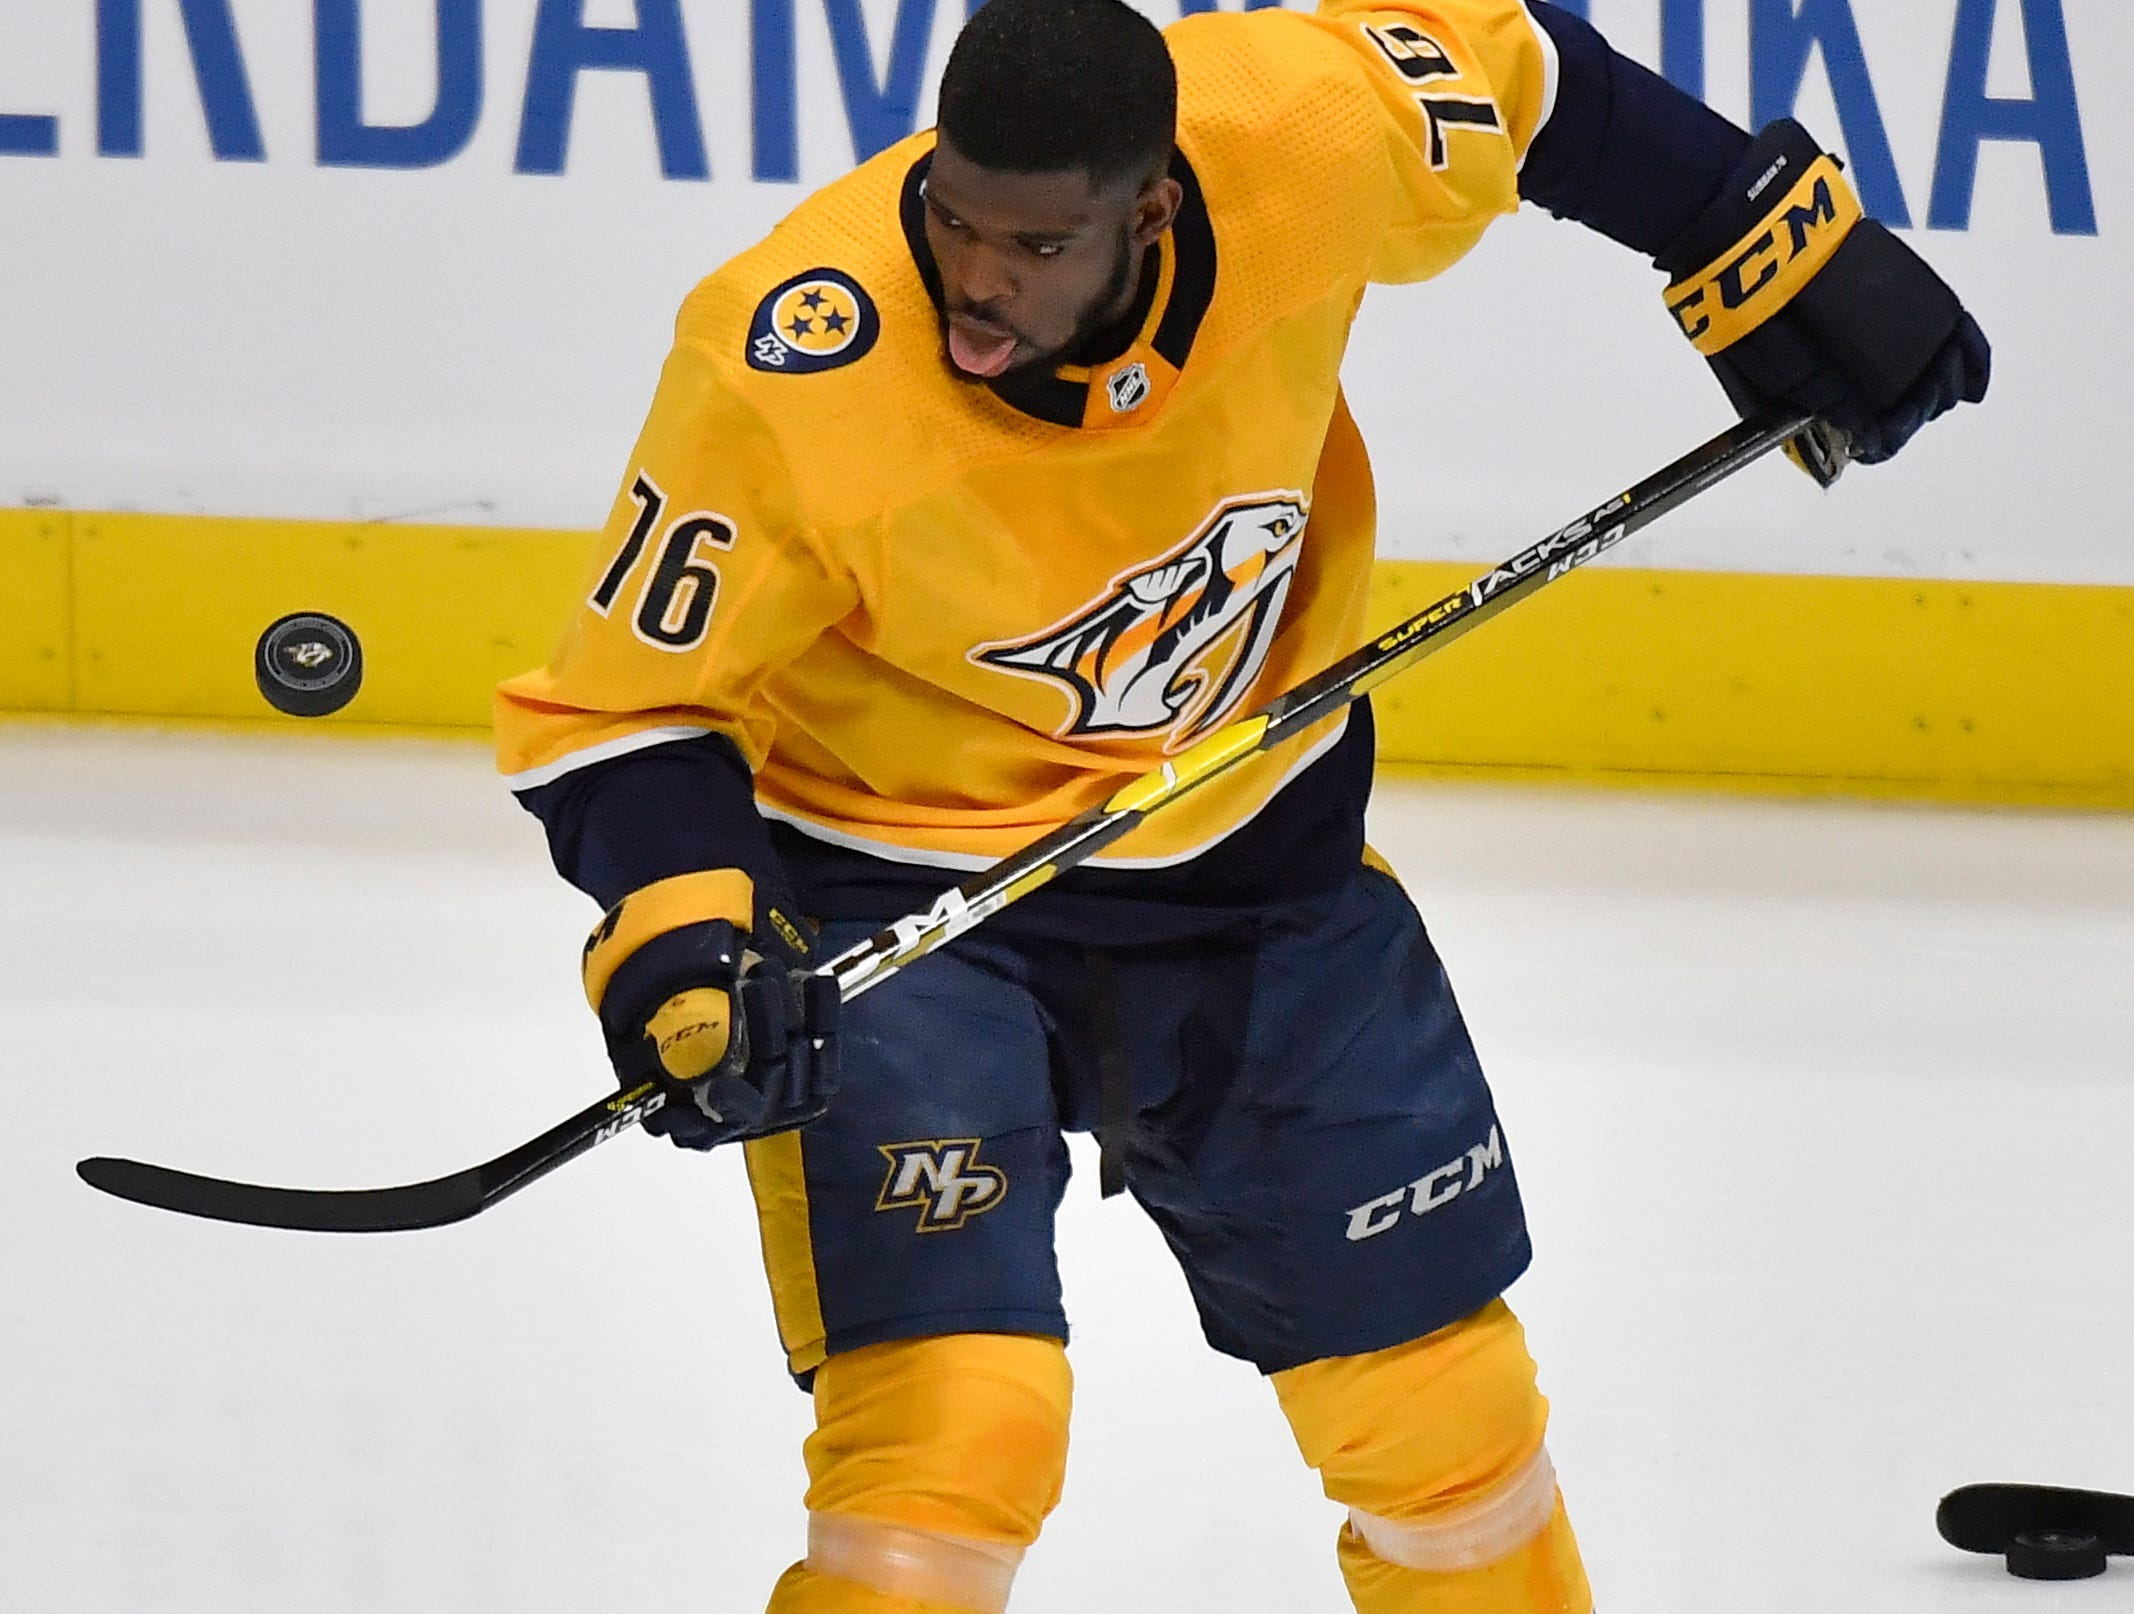 Nashville Predators defenseman P.K. Subban (76) warms up before the divisional semifinal game against the Dallas Stars at Bridgestone Arena in Nashville, Tenn., Wednesday, April 10, 2019.